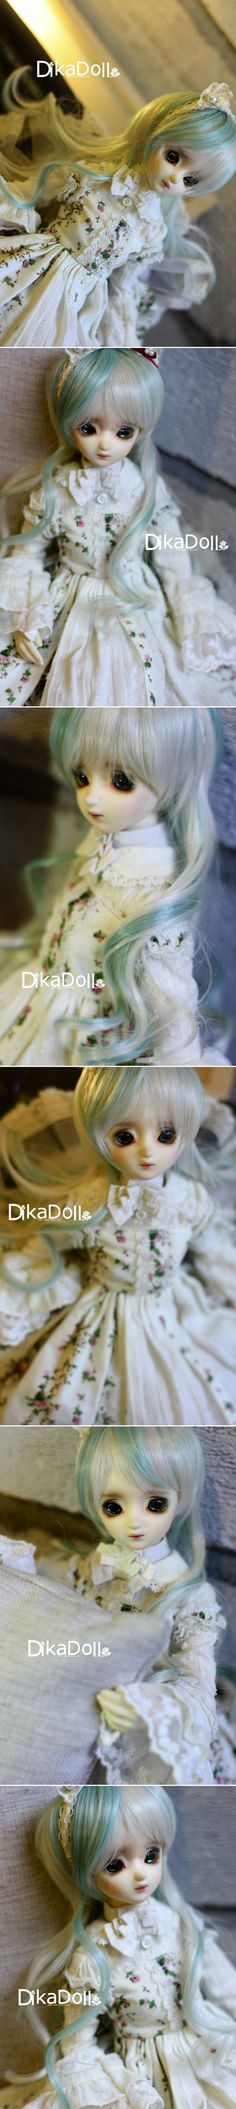 Edime (Girl)-2, 42cm Dika Doll - BJD Dolls, Accessories - Alice's Collections